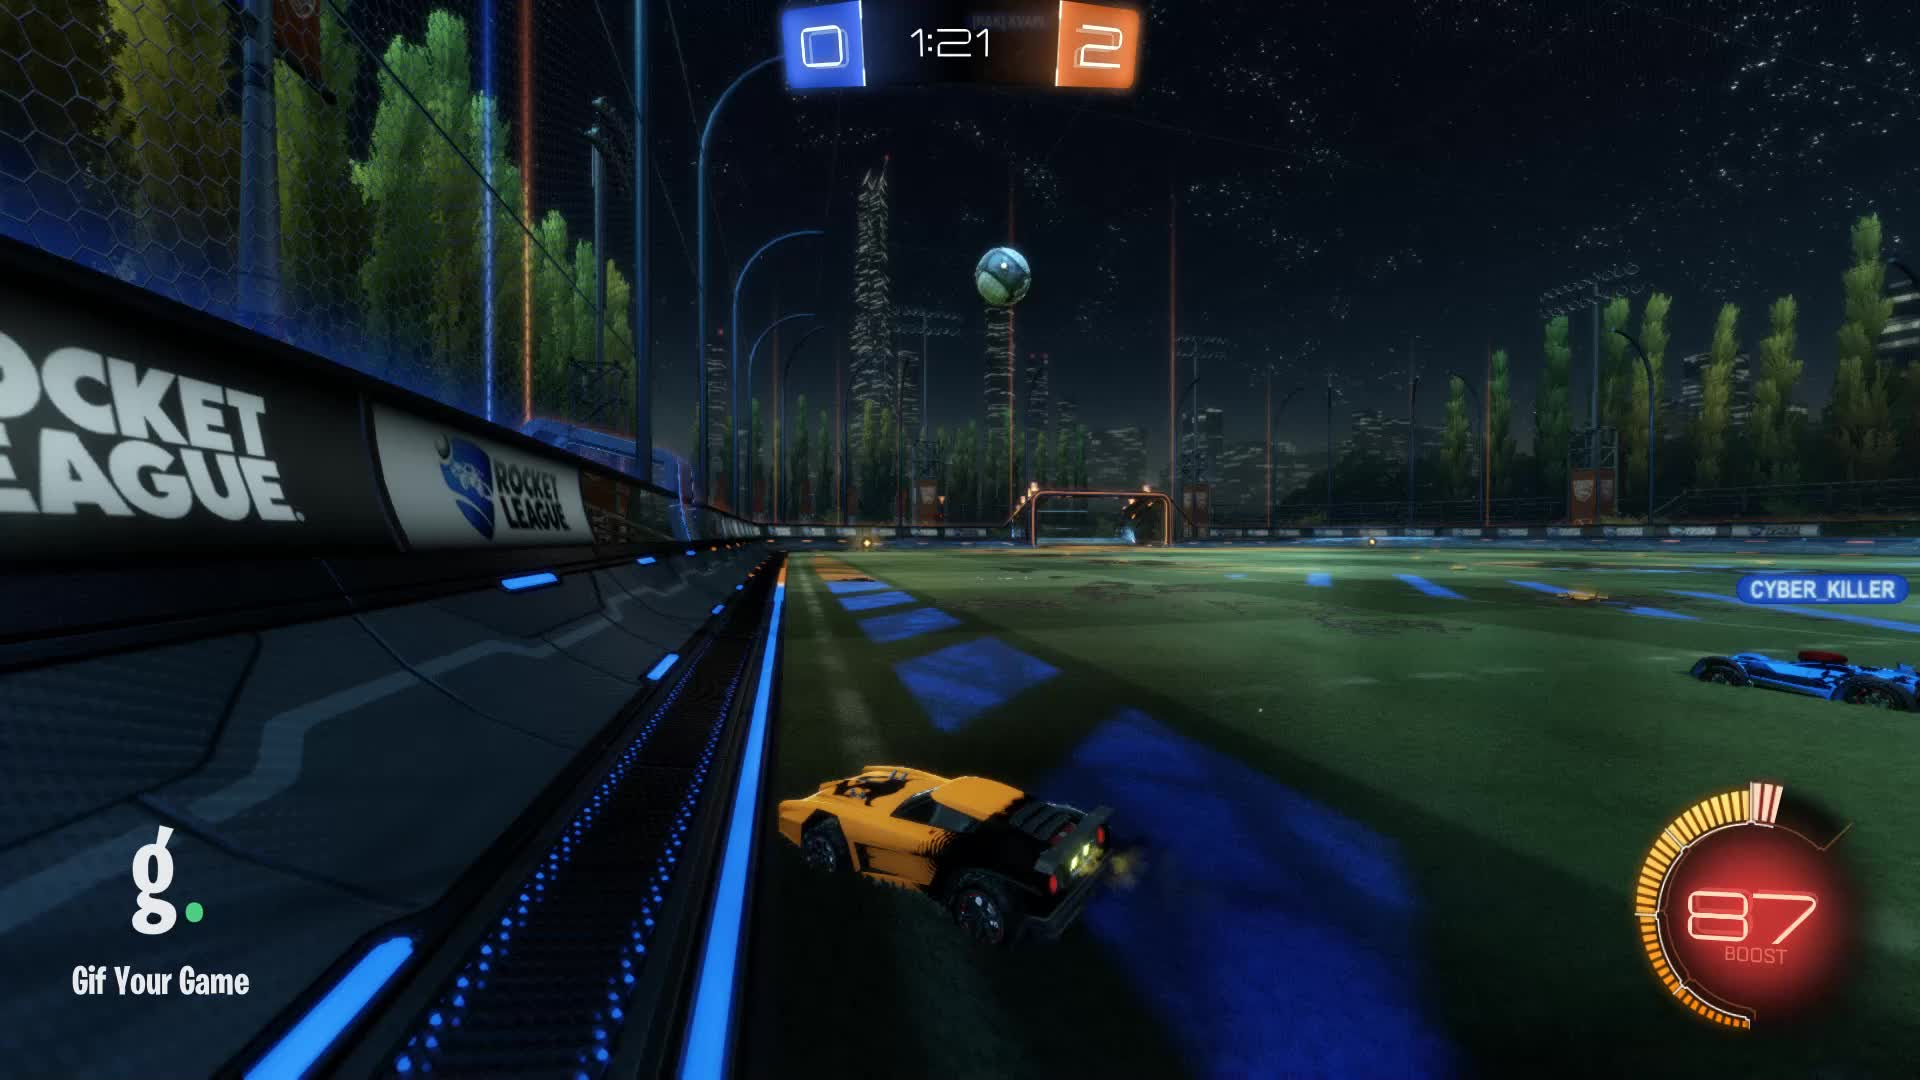 Gif Your Game, GifYourGame, Goal, JAG | Purple, Rocket League, RocketLeague, Goal 3: JAG | Purple GIFs